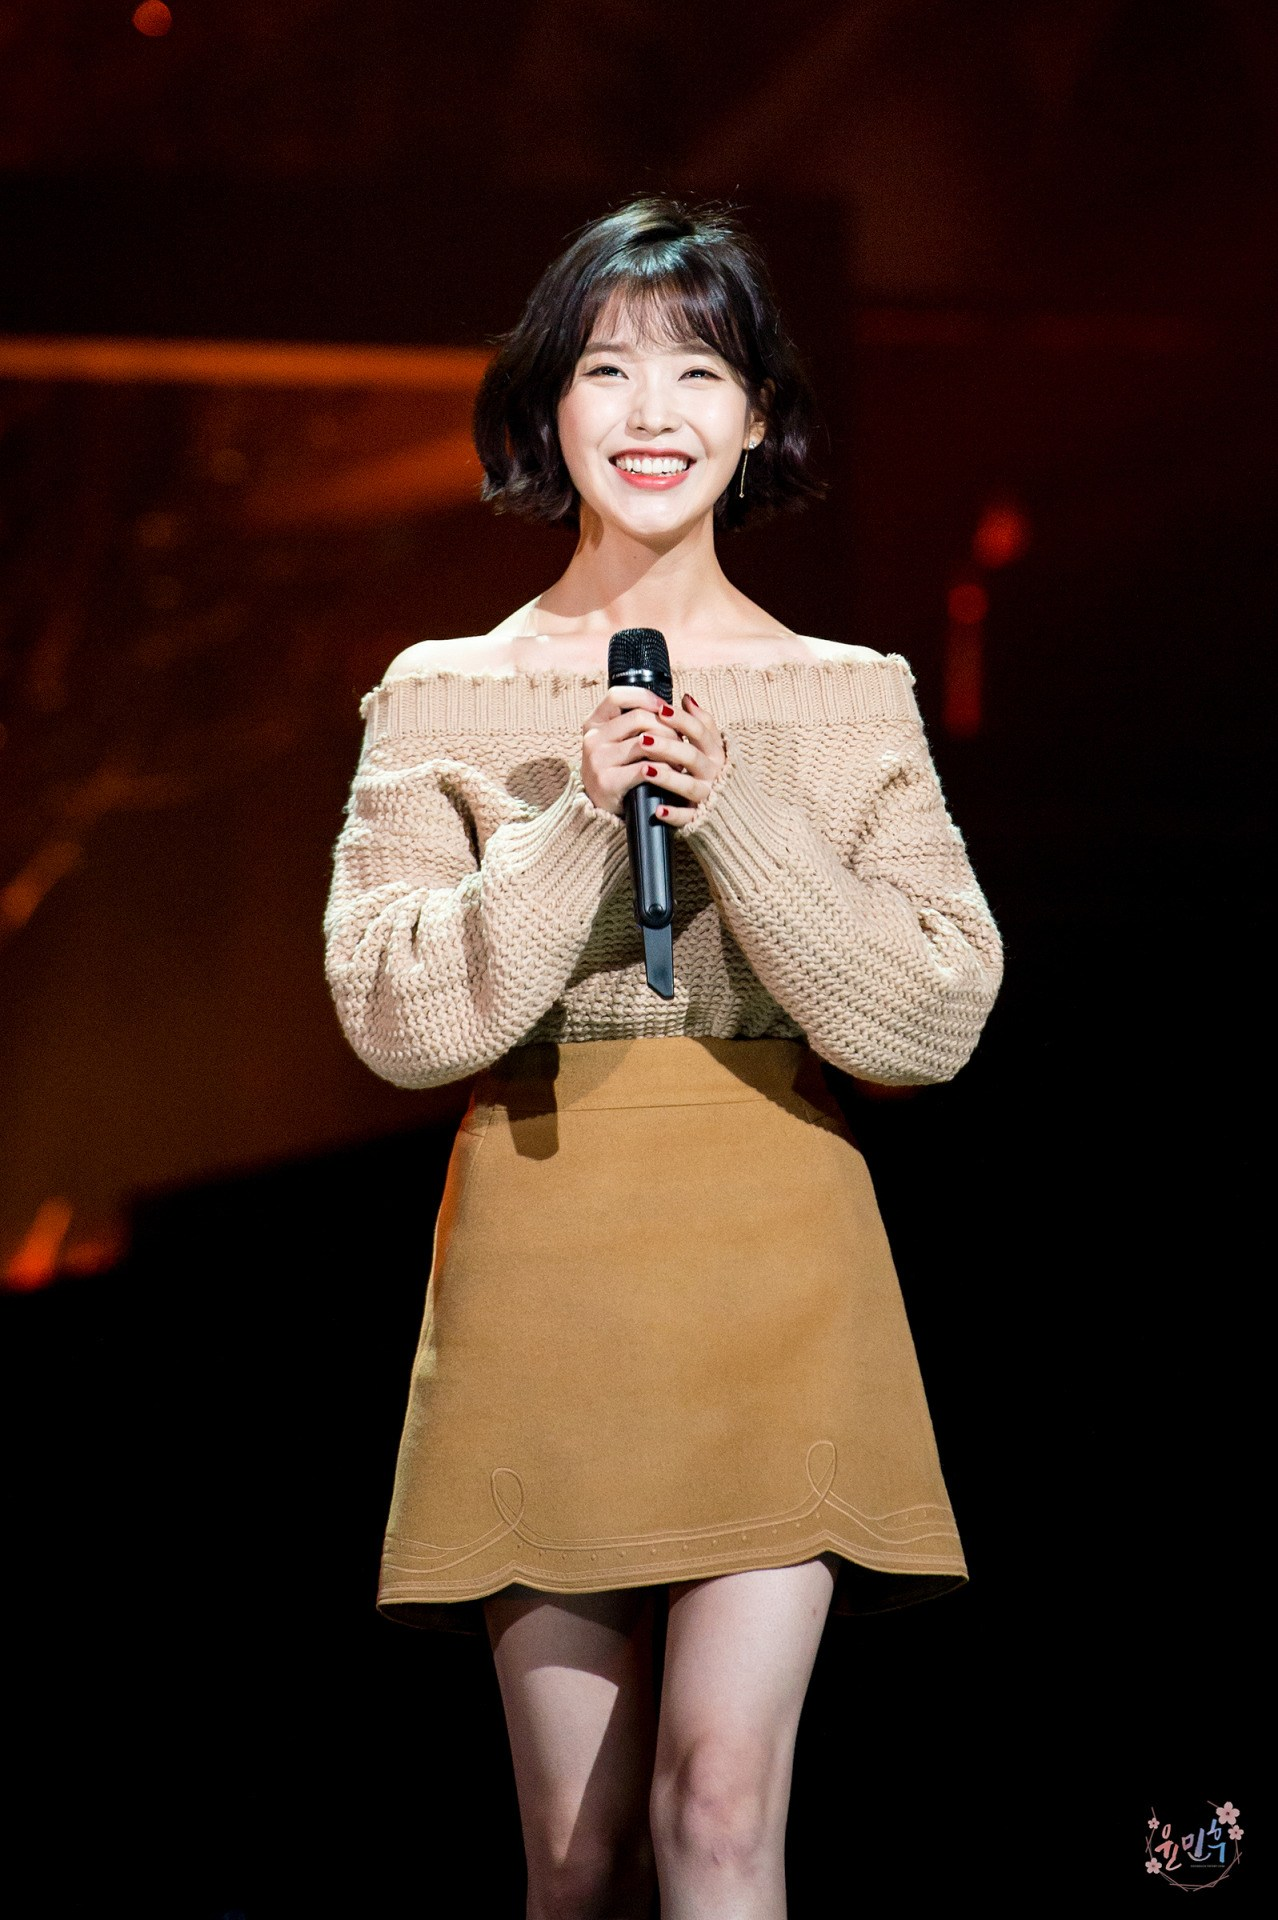 It Happened IU Has Chopped Off All Her Long Hair Koreaboo